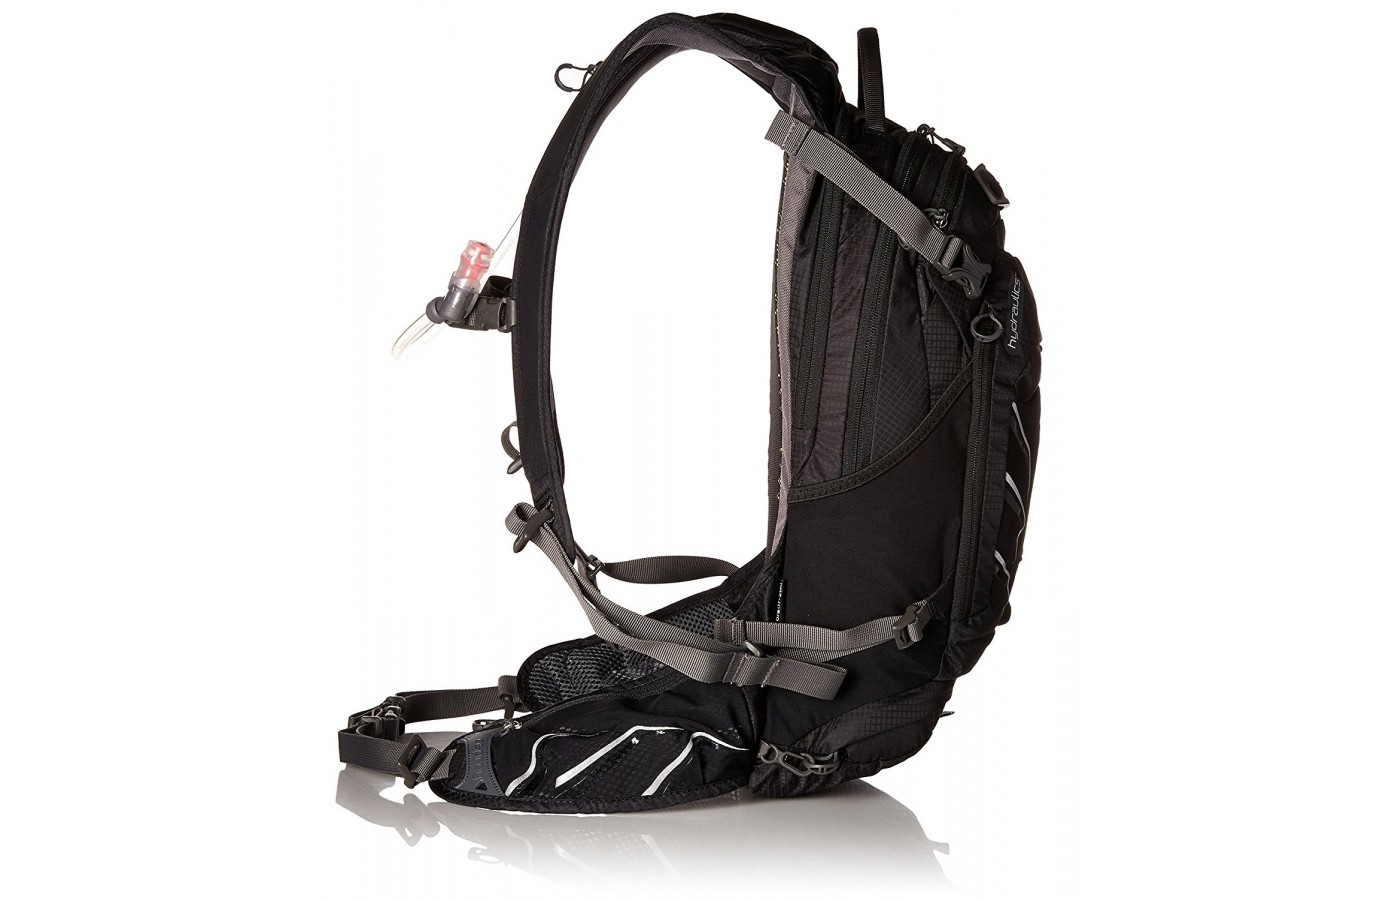 Osprey Packs Raptor 14 Hydration Pack Side View 2